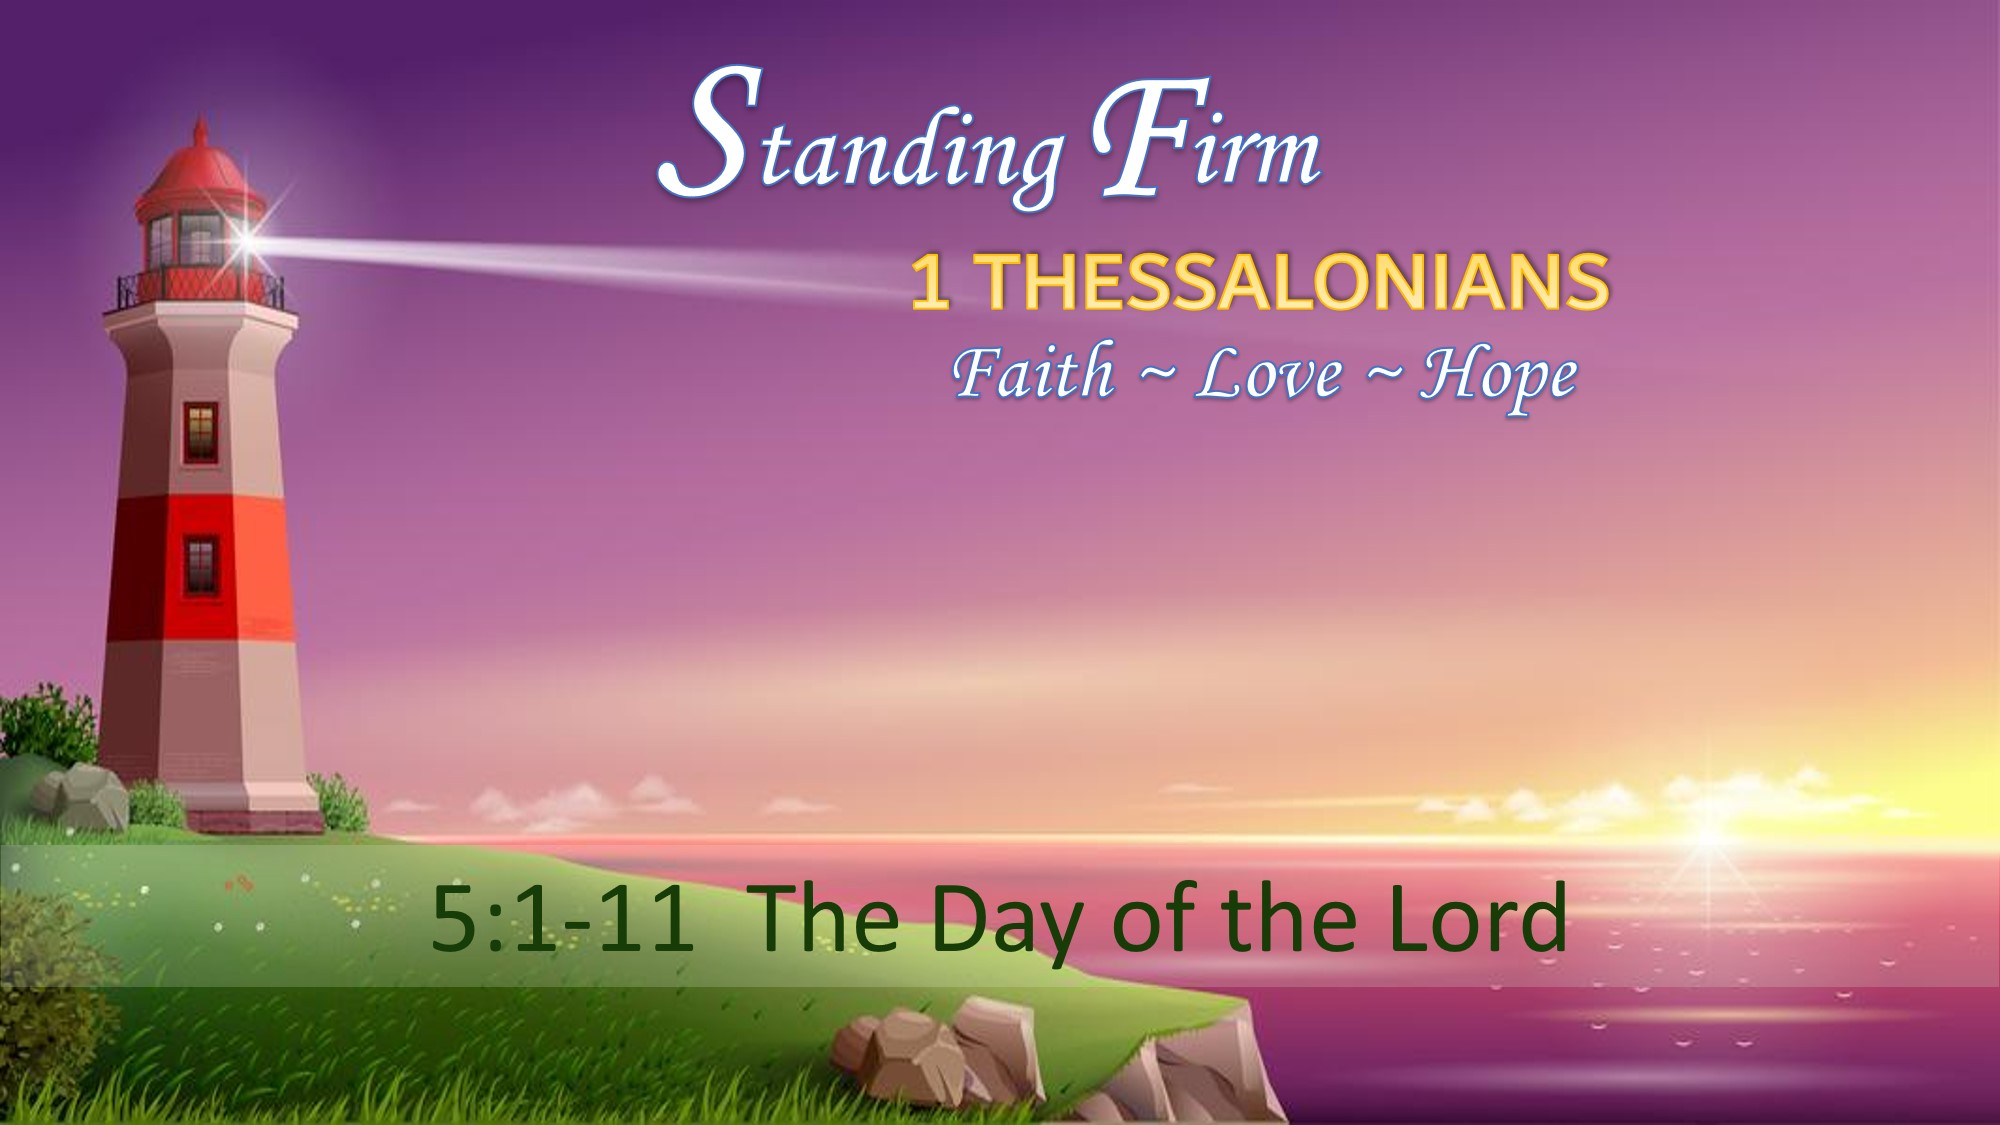 Standing Firm The Day of the Lord 1 Thessalonians 5 1-11